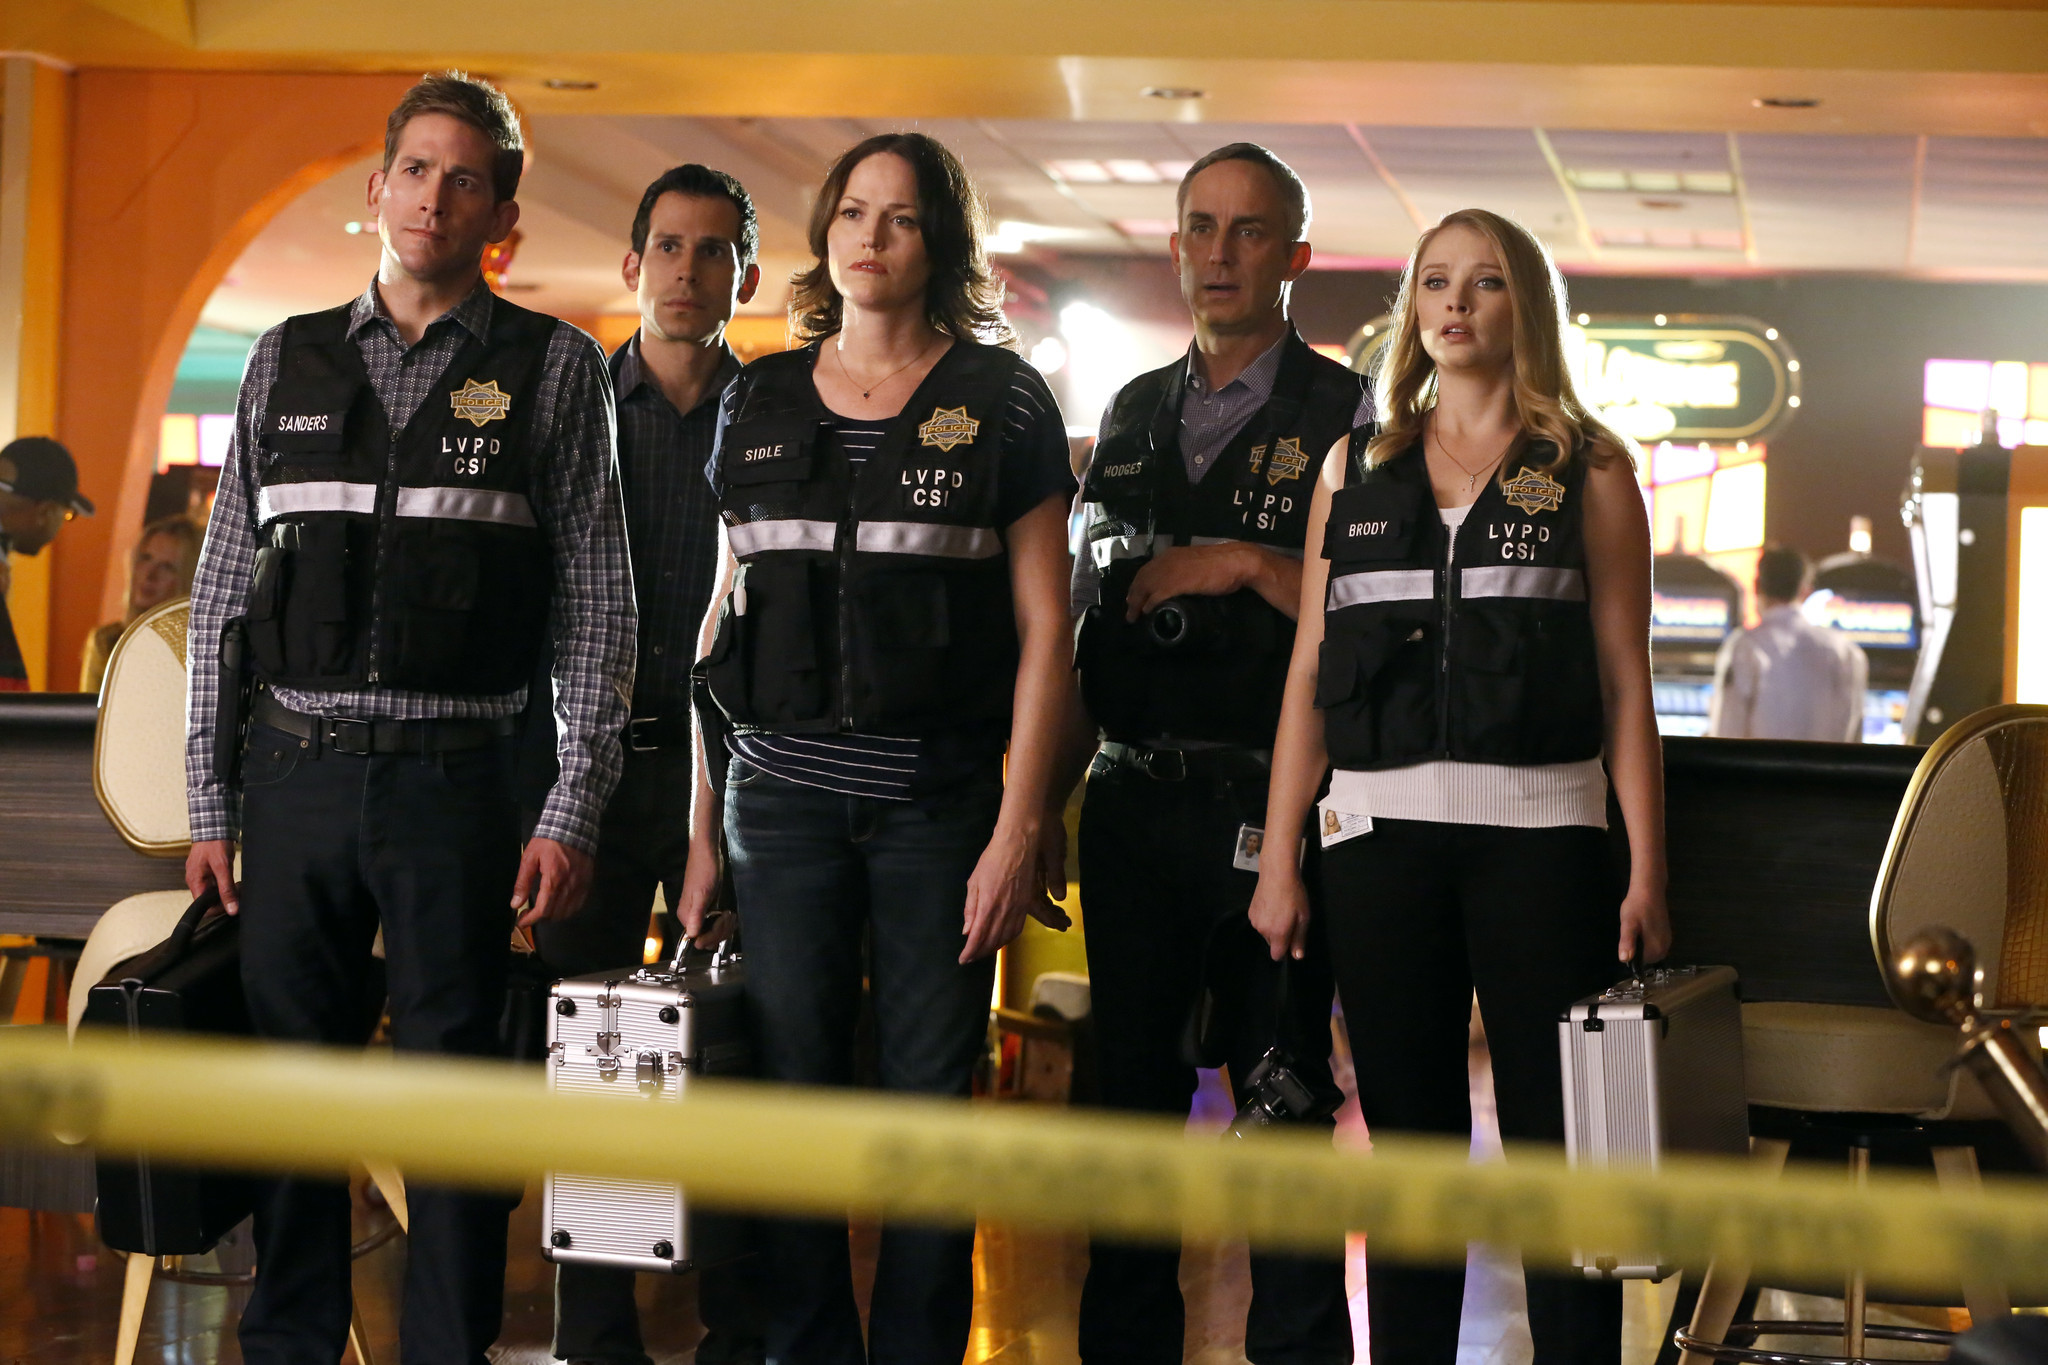 """""""I was part of this weird love story"""": Jorja Fox on 'CSI ..."""